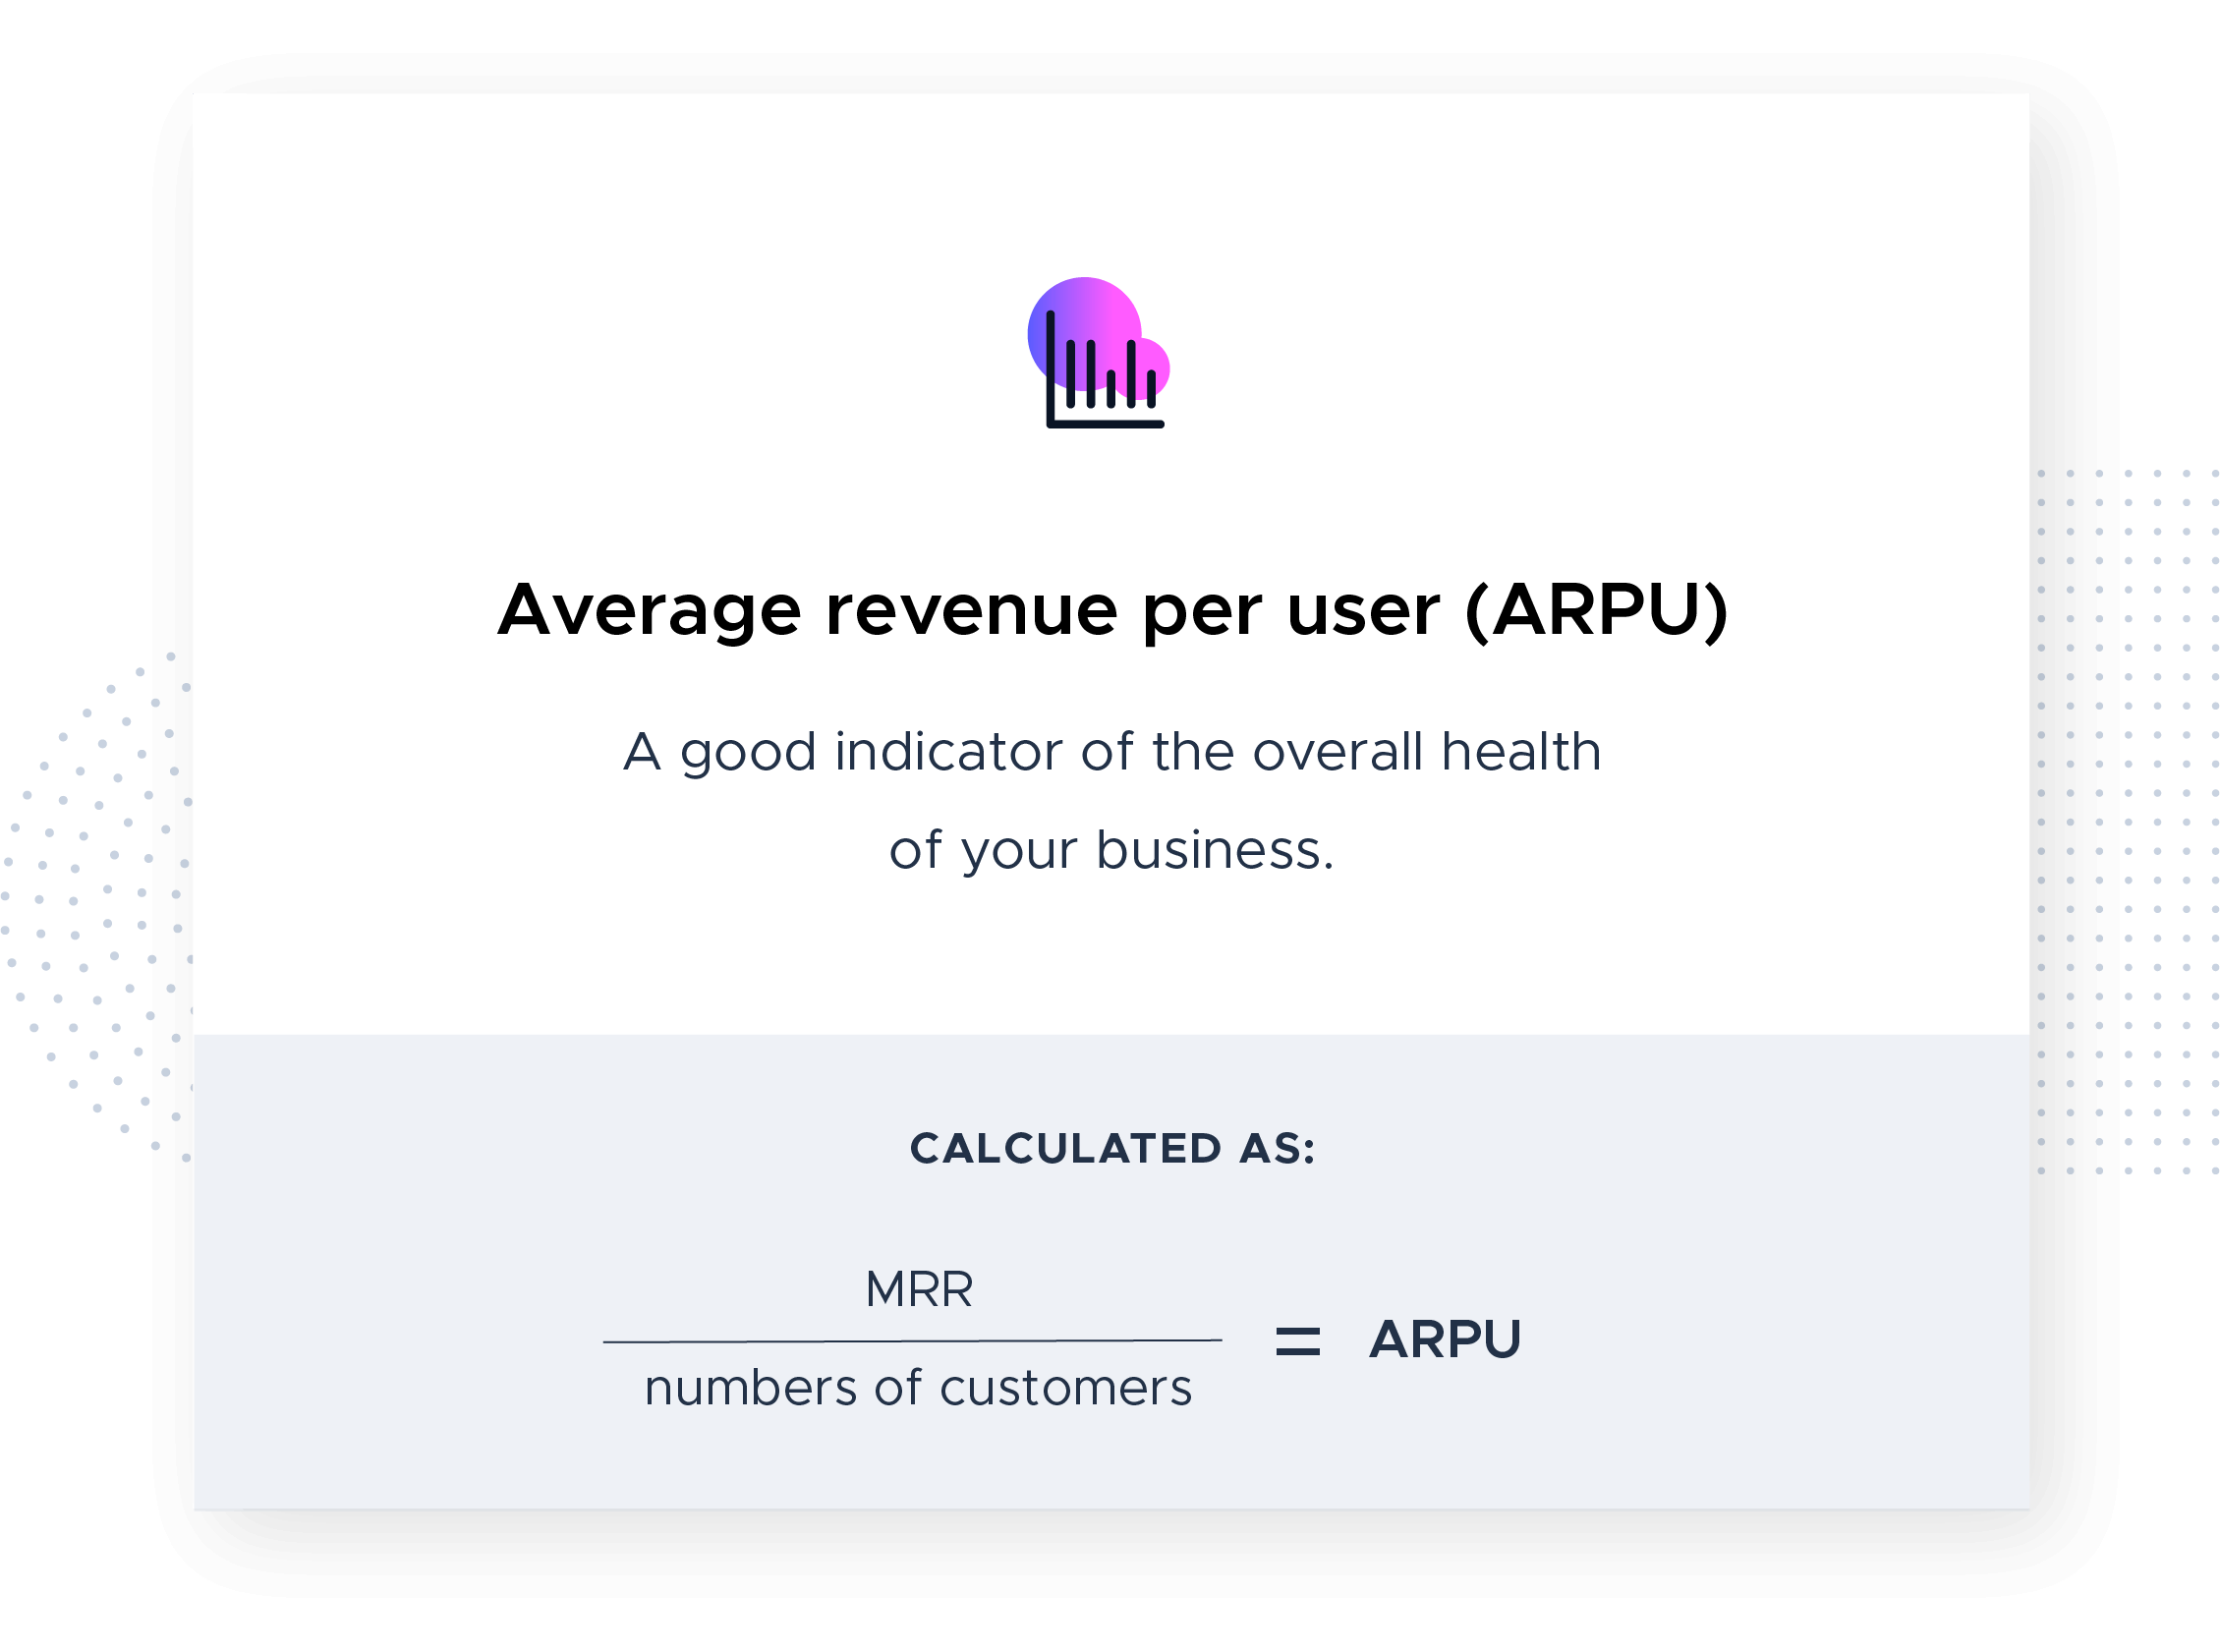 average revenue per user or arpu definition for saas companies—what is arpu?